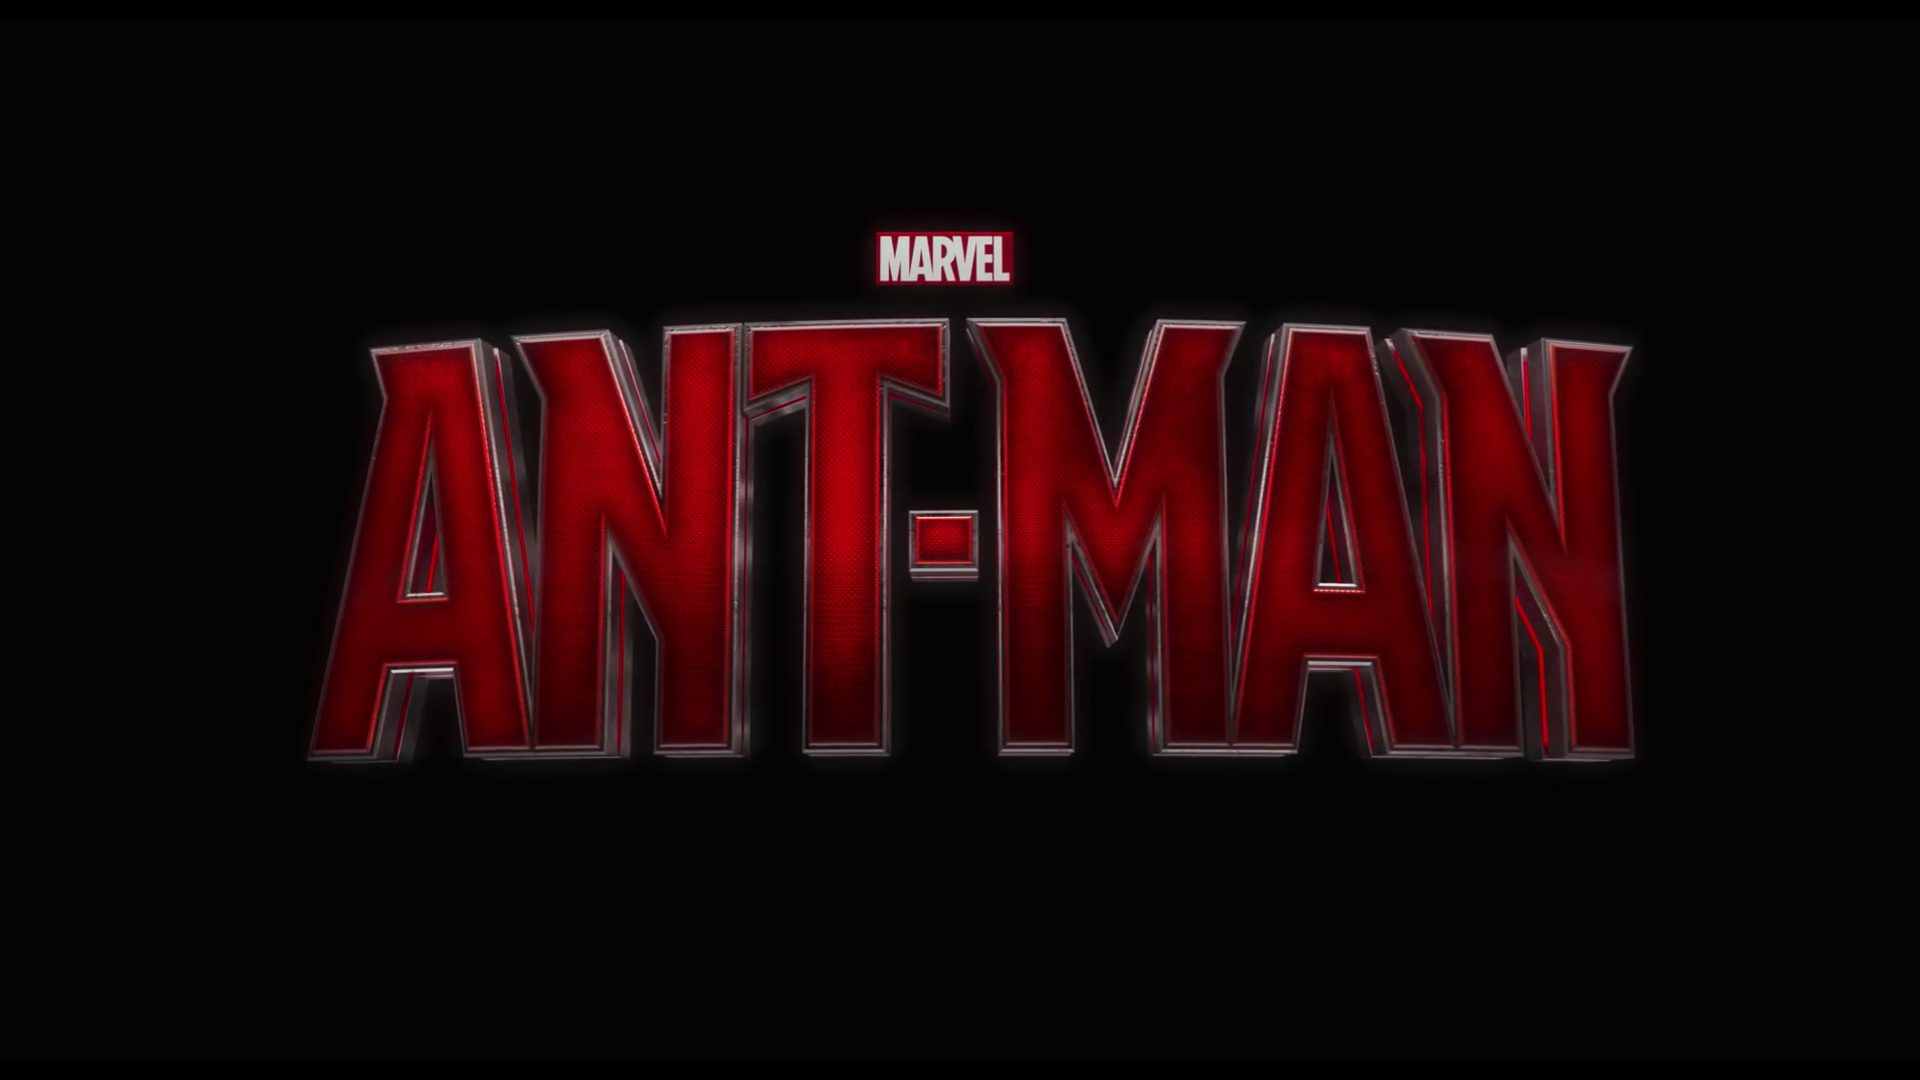 Ant Man Computer Wallpapers Desktop Backgrounds 1920x1080 ID 1920x1080